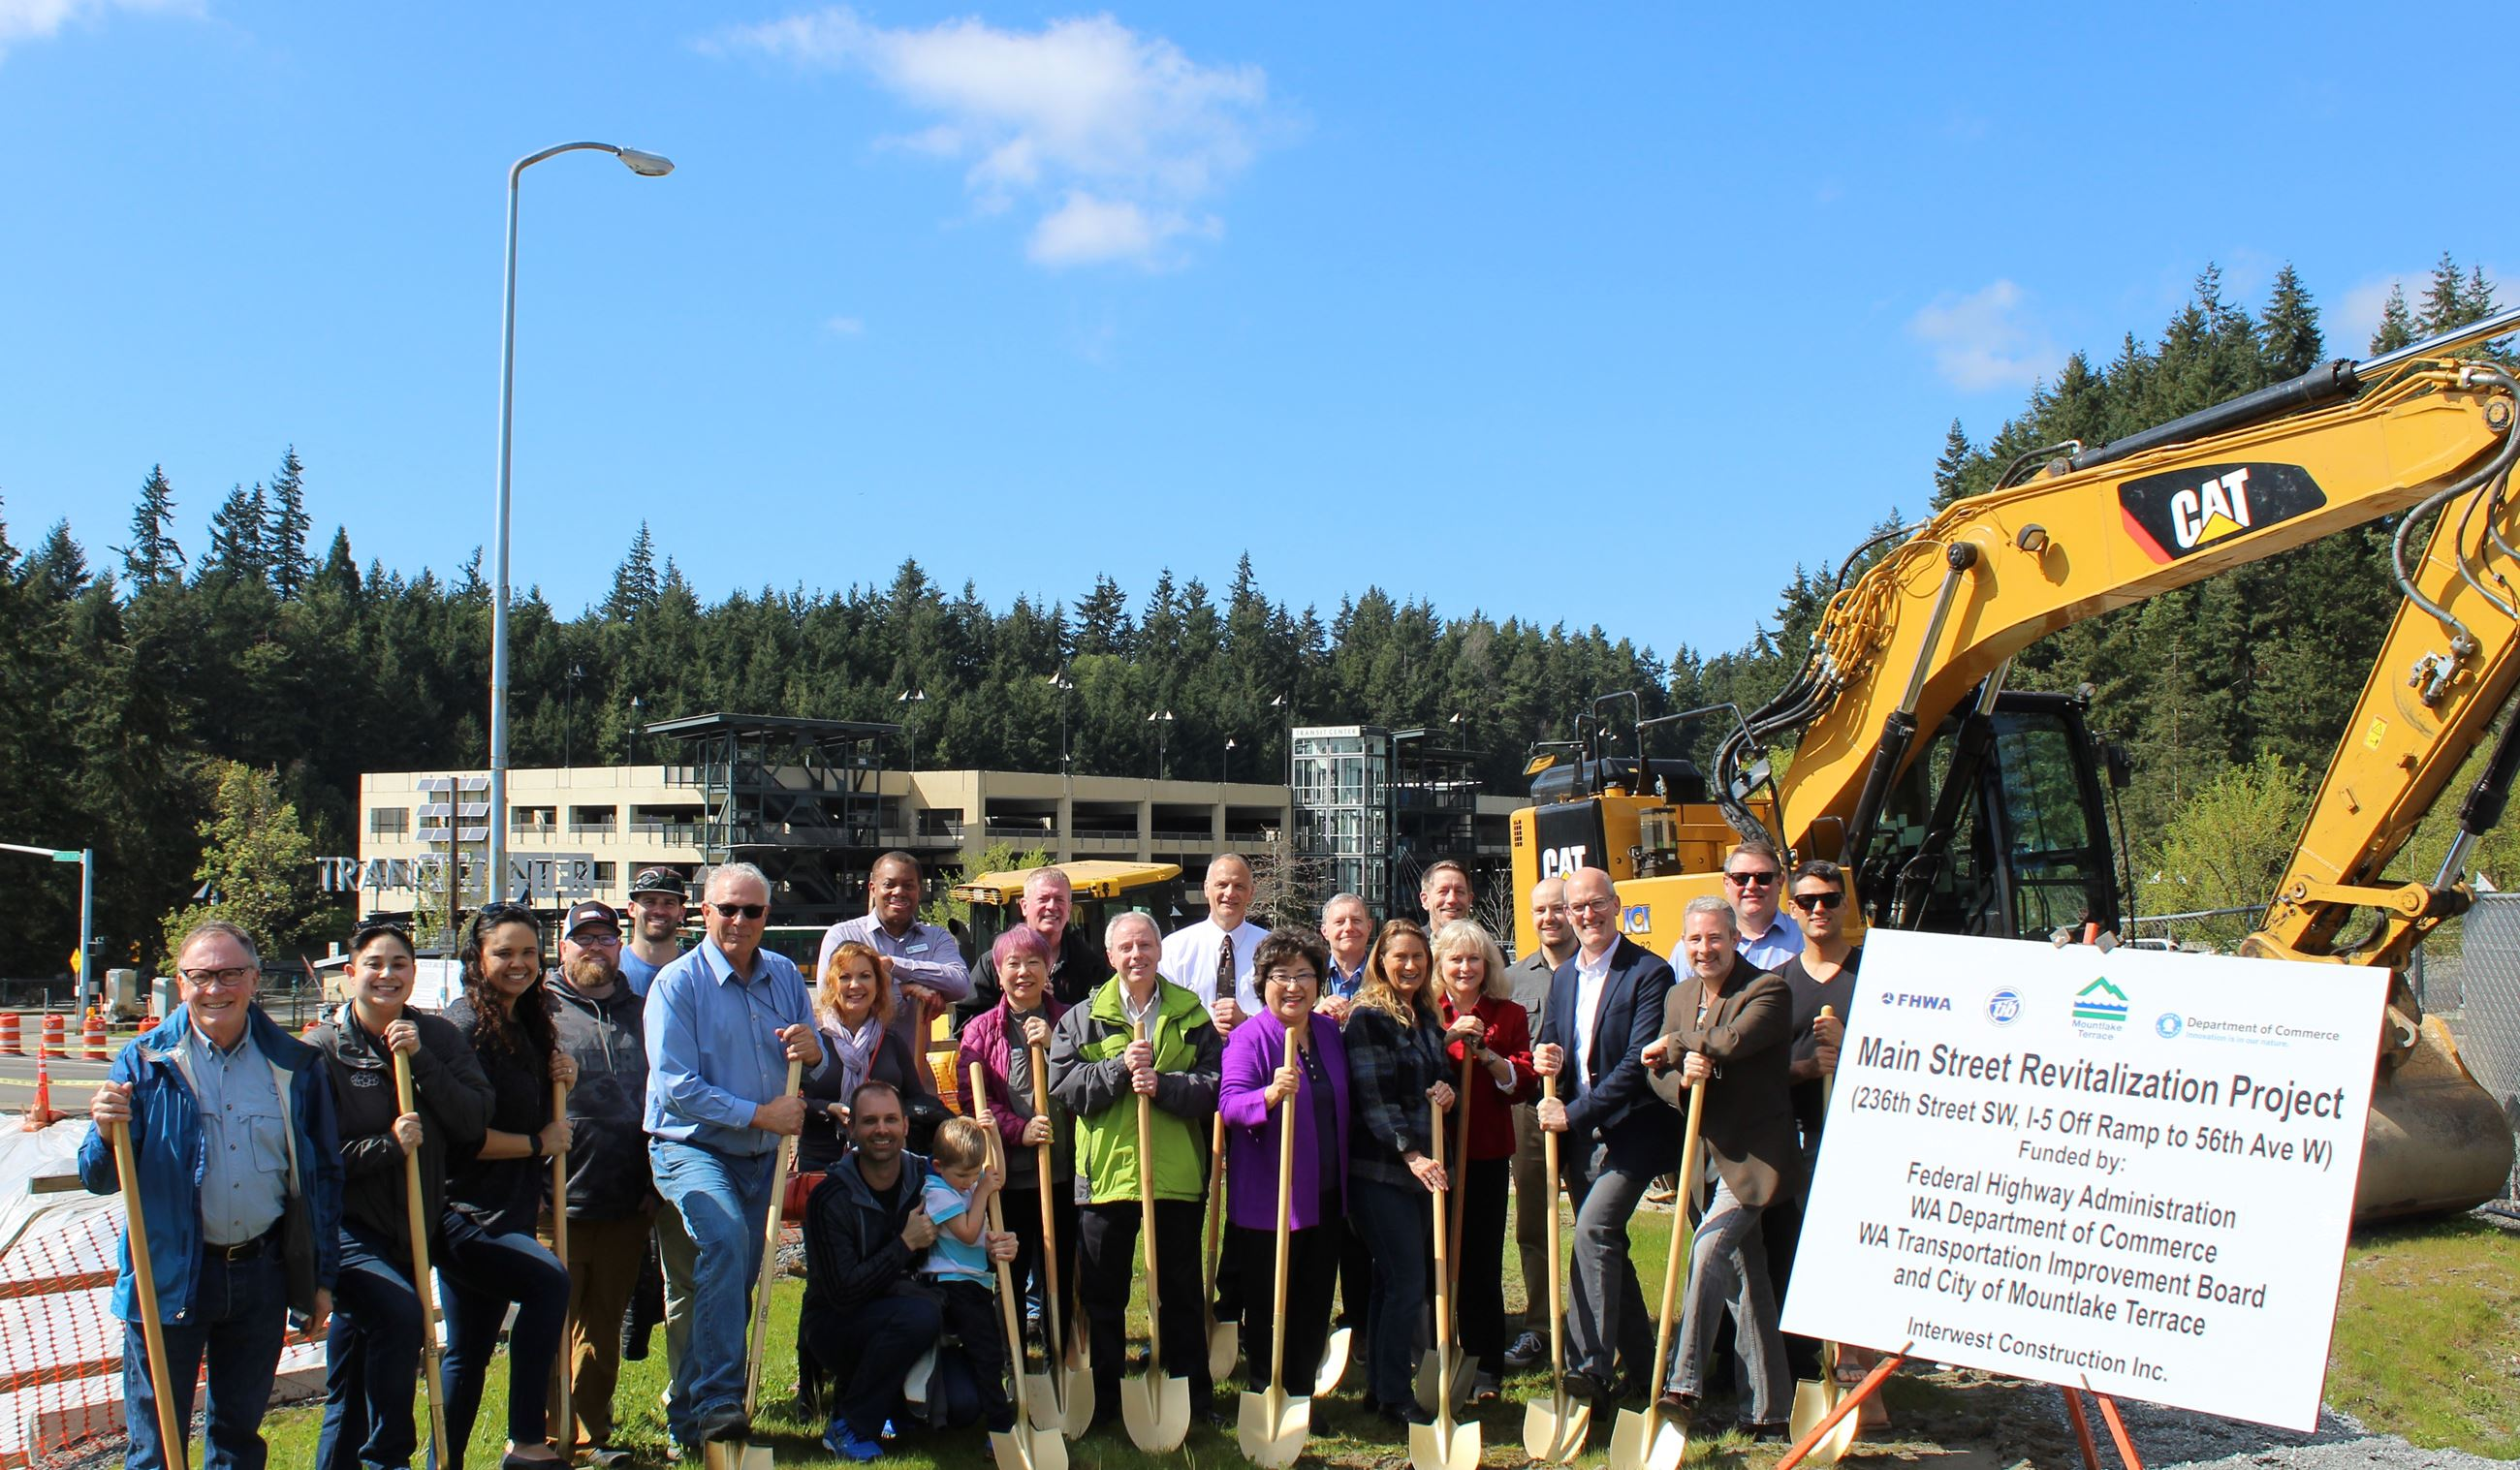 Main Street Project Ground Breaking Ceremony Group Photo